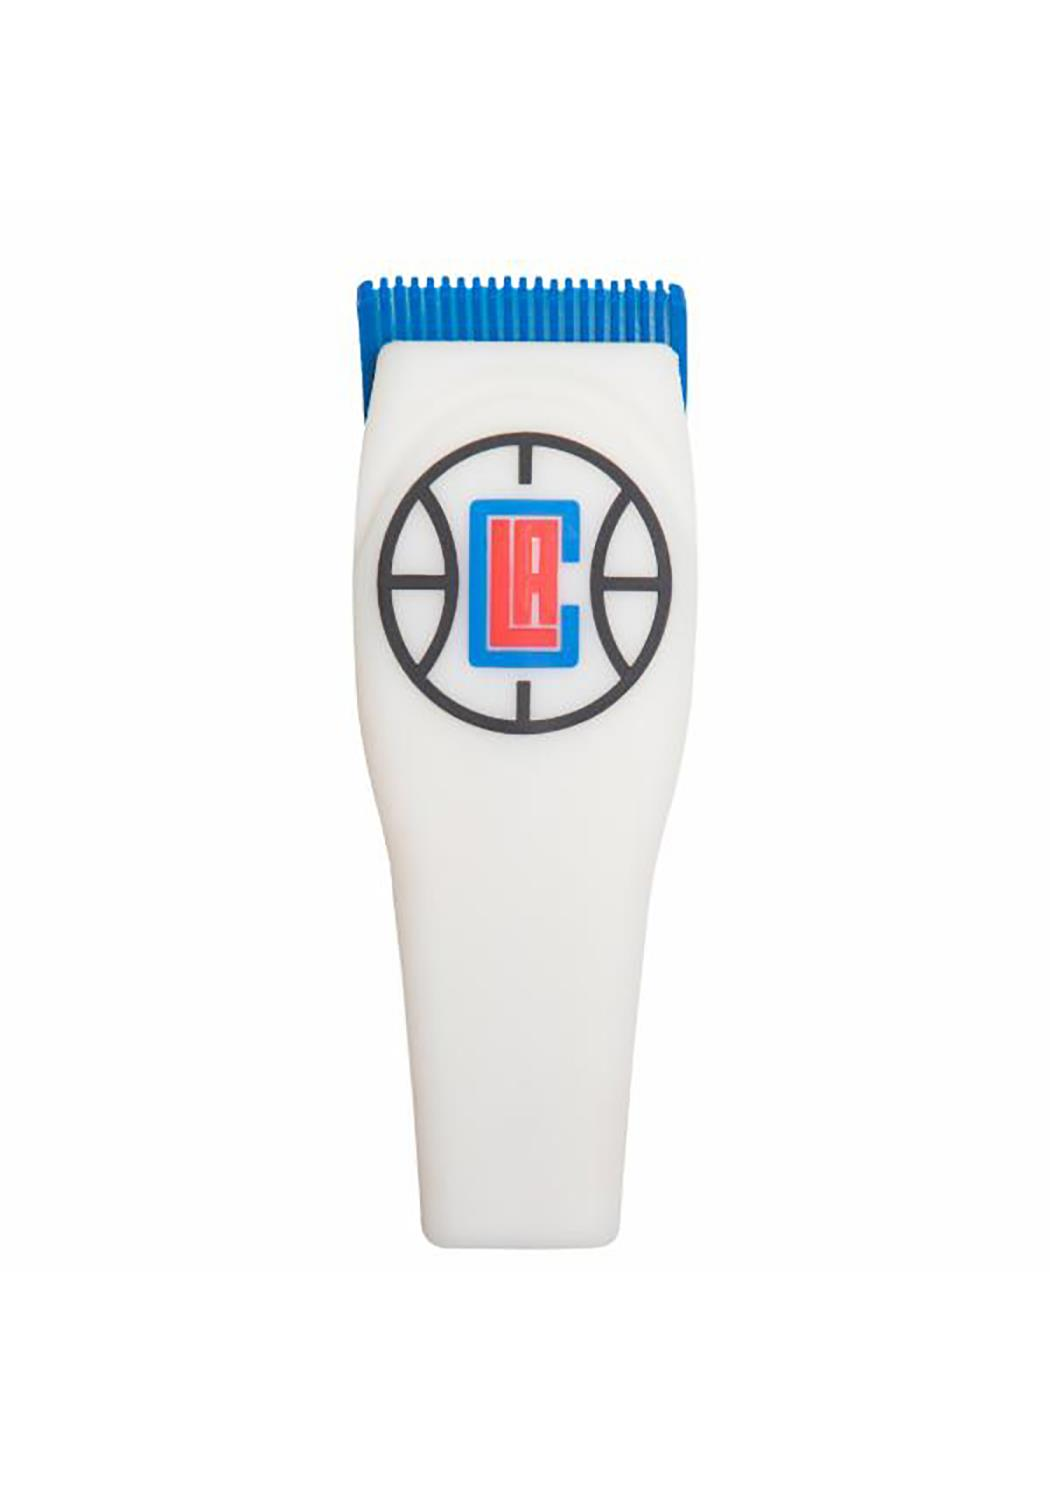 LA Clippers - Portable Phone Charger